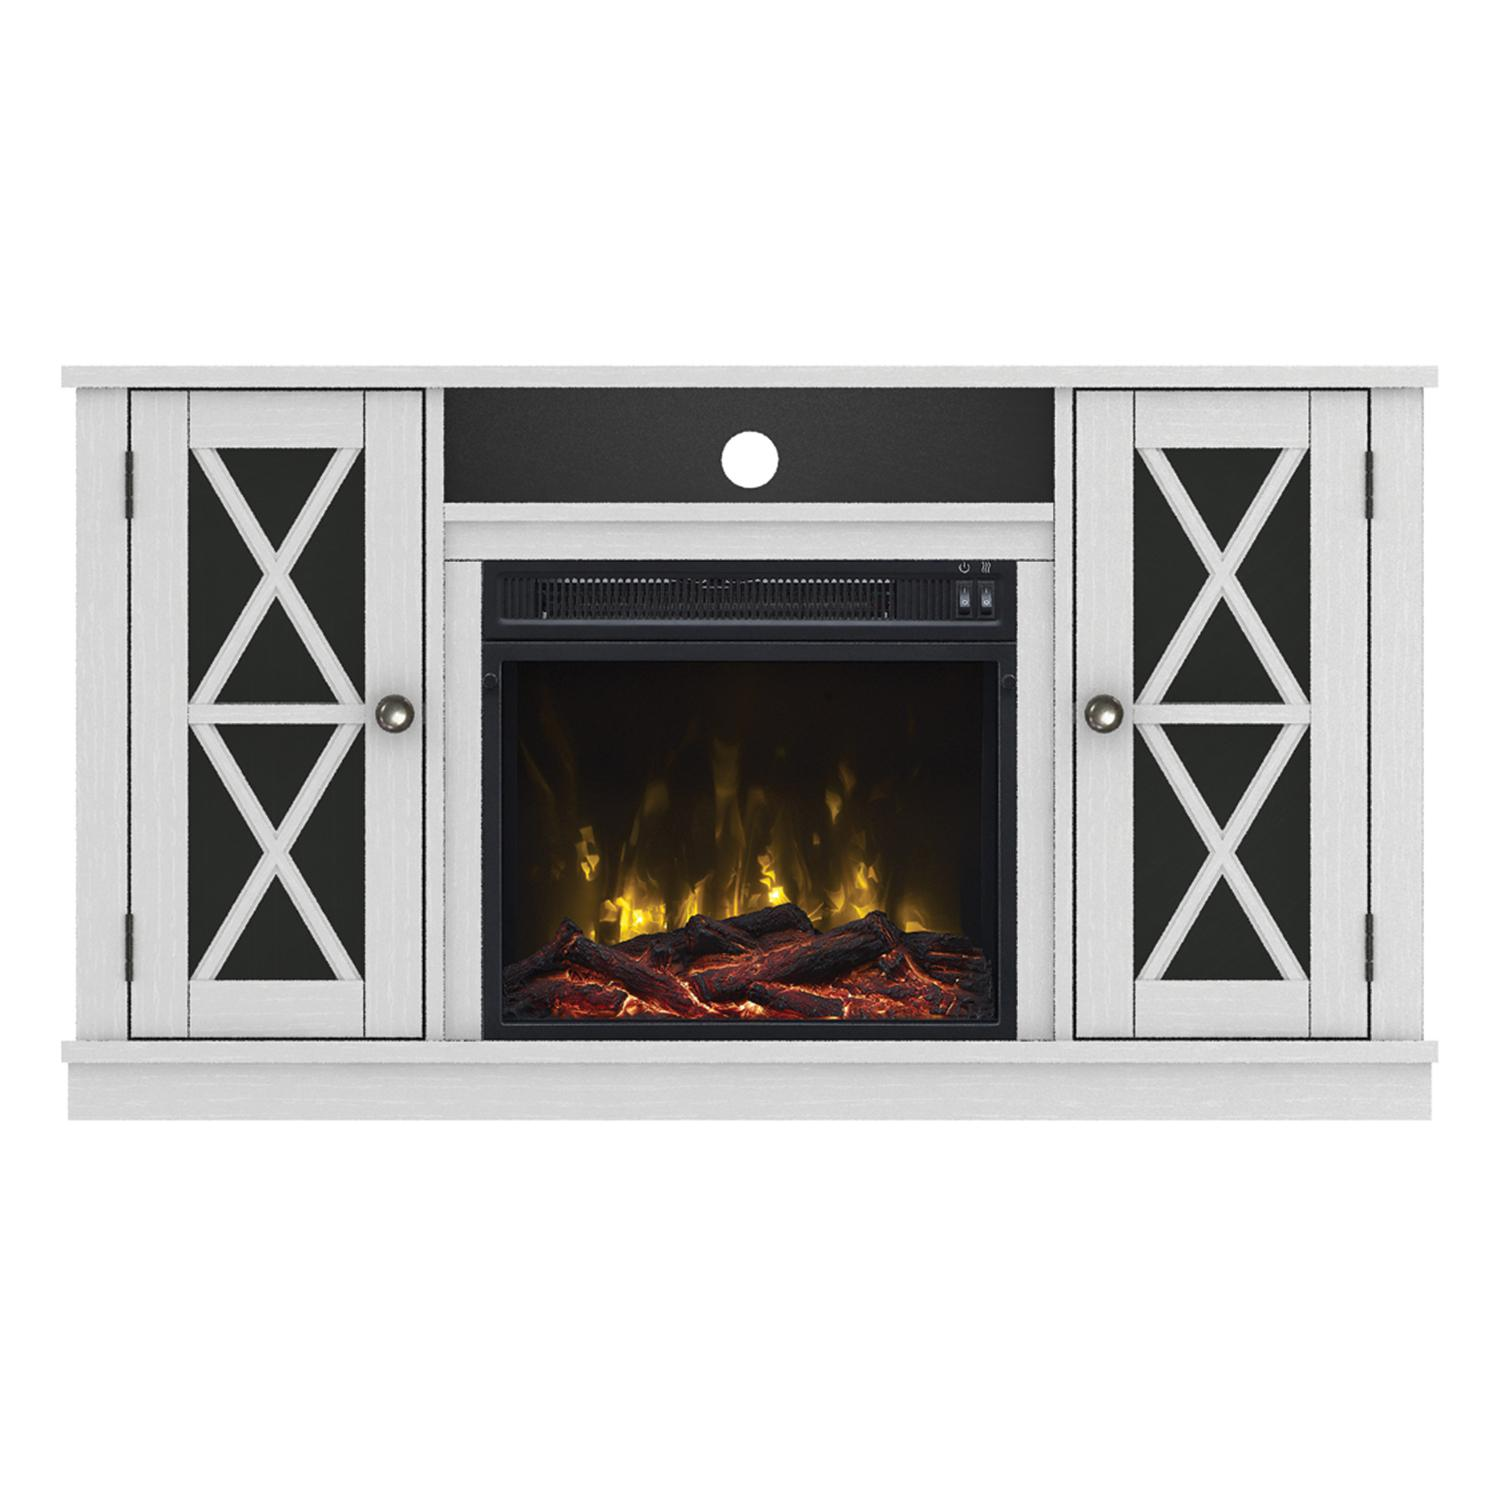 "Classicflame Bayport 47 1/2"" Tv Stand With Electric Fireplace - White - 18mm6092-pt85s"